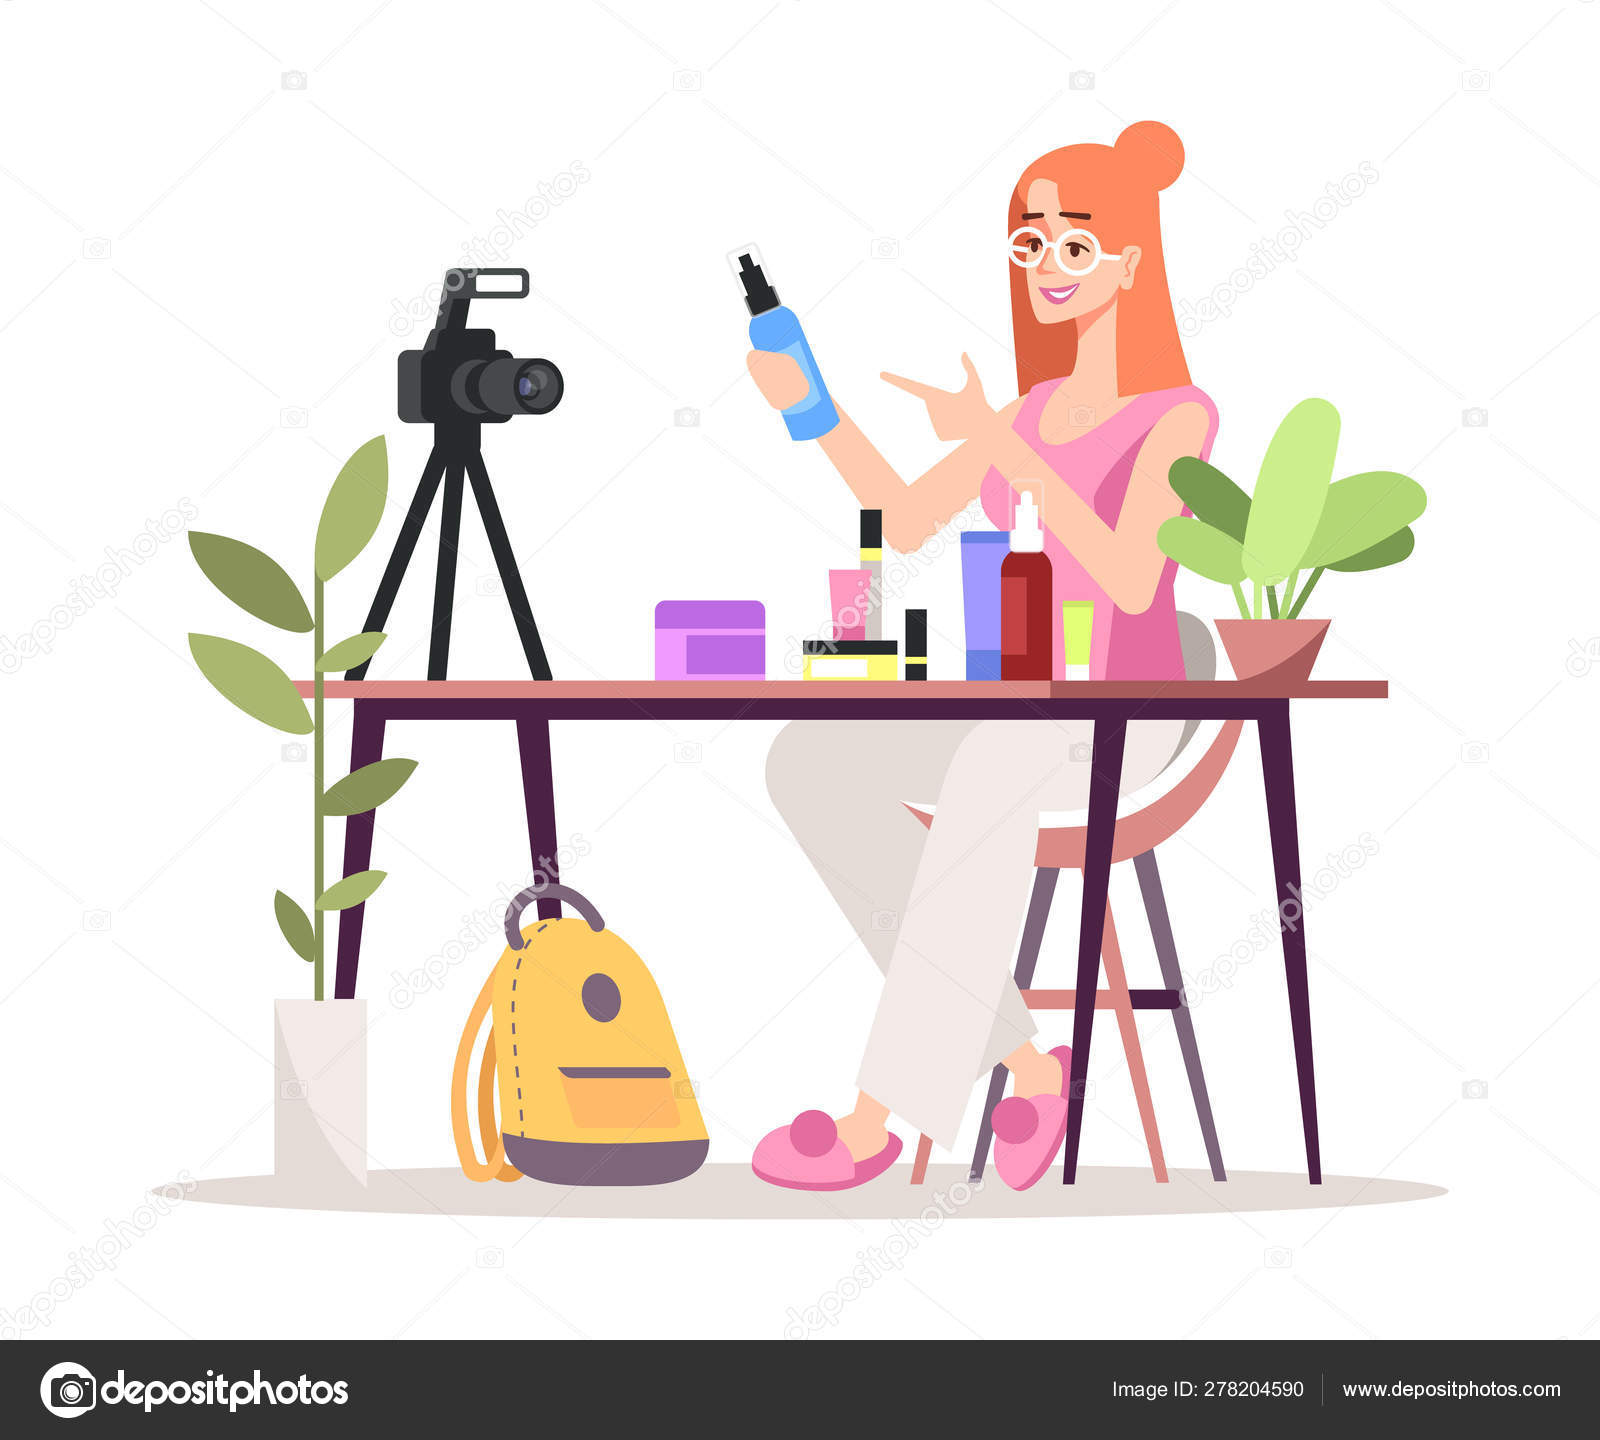 Cosmetics Online Review Flat Vector Illustration Fashion Beauty Blogger Vlogger Isolated Cartoon Character On White Background Makeup Skincare Products Video Review Influencer Marketing Concept Stock Vector C Bsd 278204590